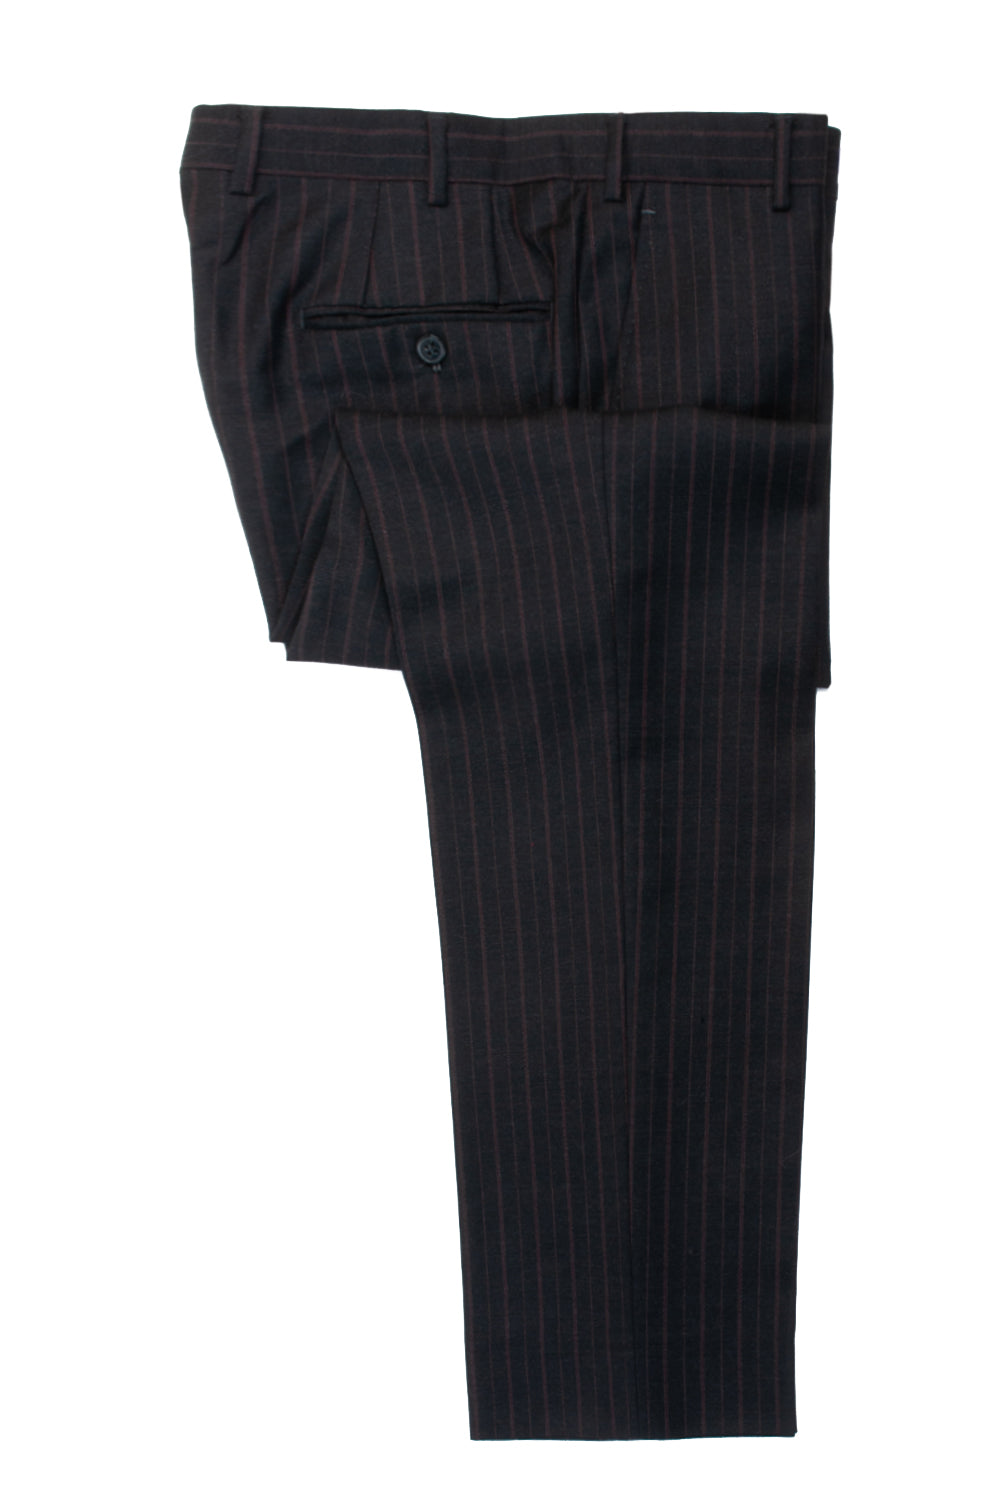 ZZegna Dark Grey Striped City Wool Suit for Luxmrkt.com Menswear Consignment Edmonton